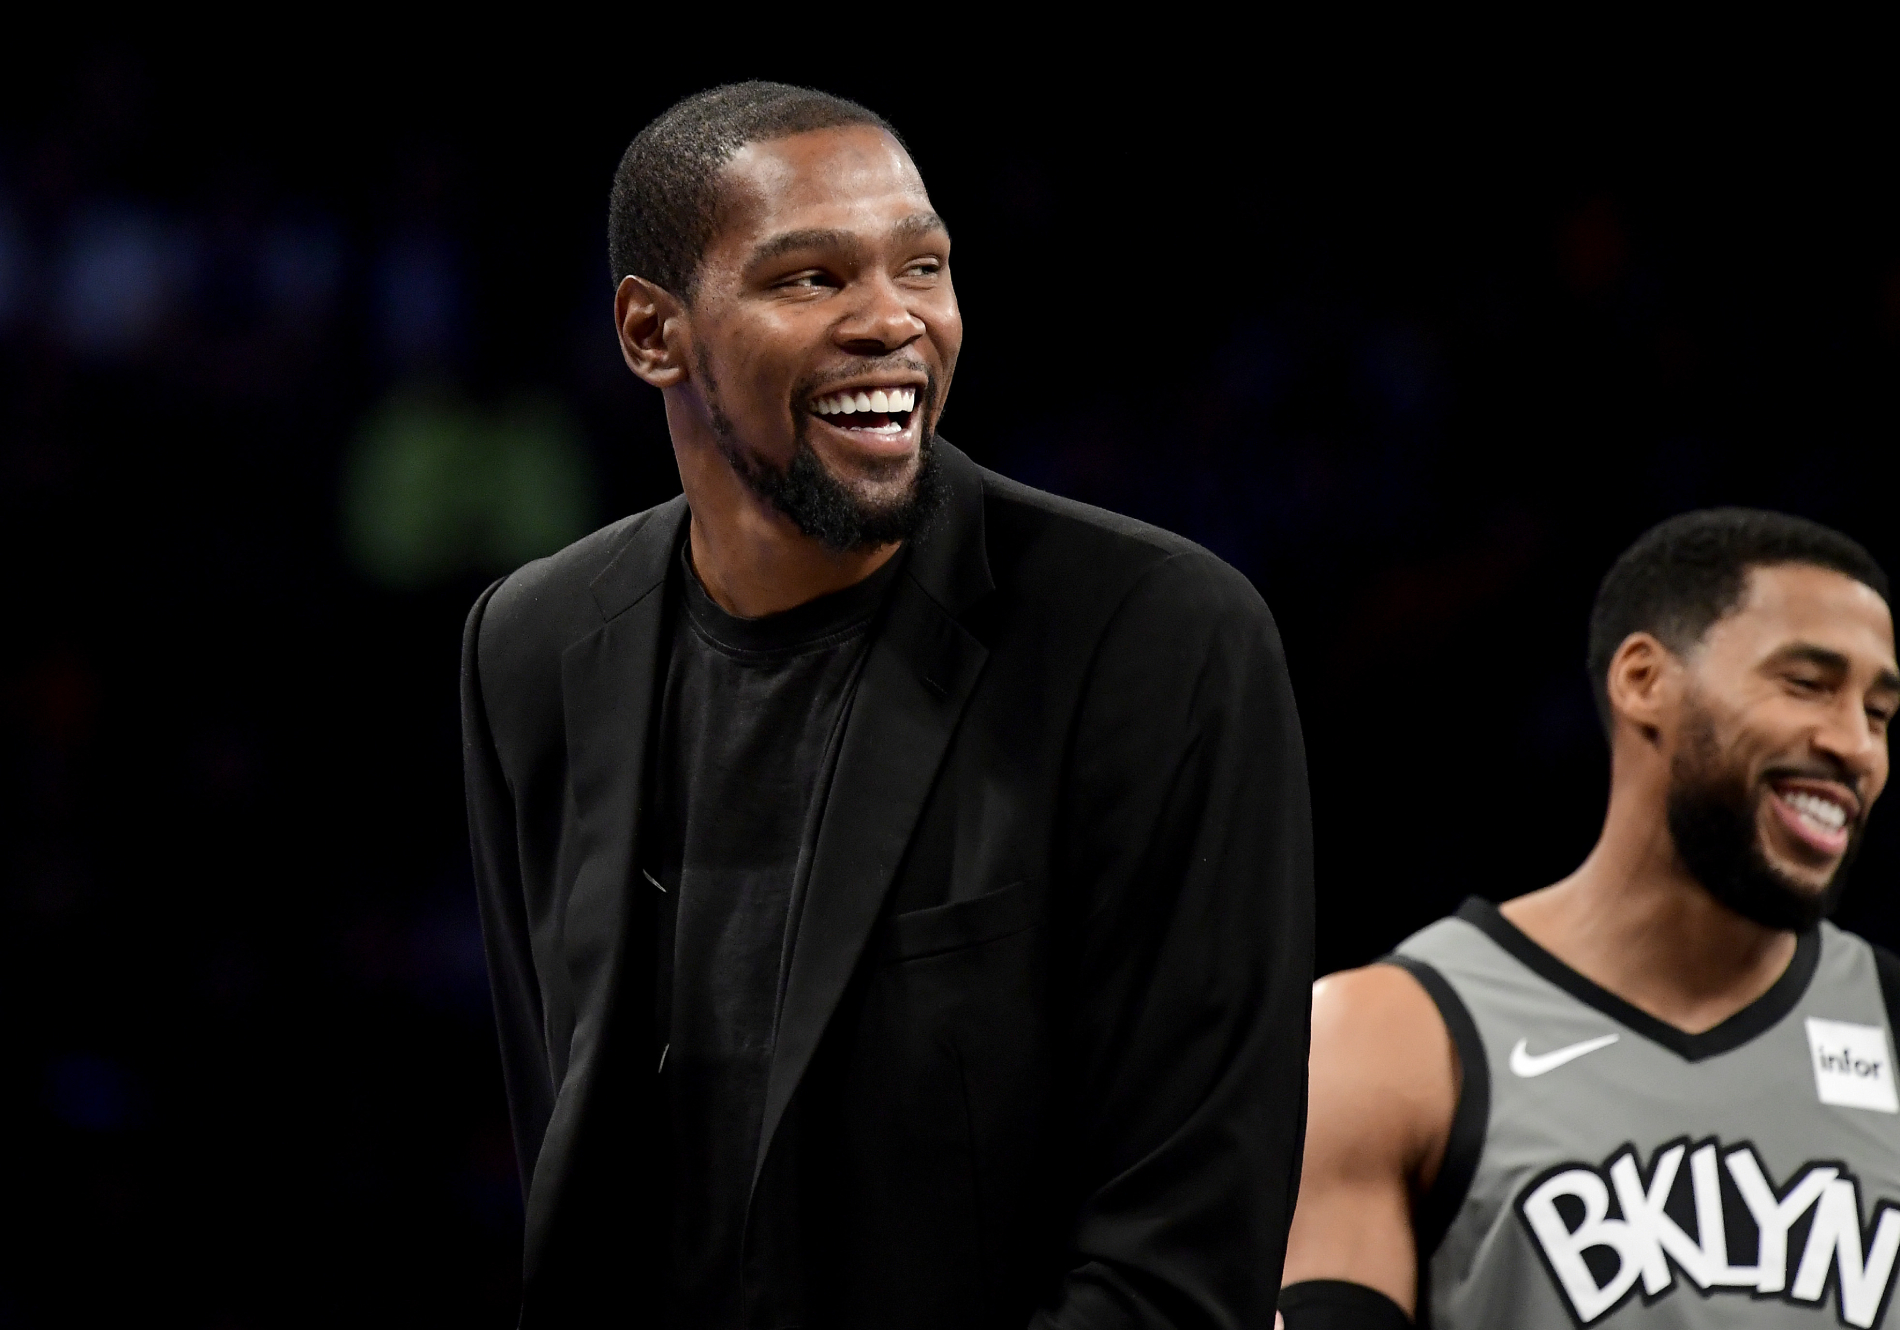 Kevin Durant and the Brooklyn Nets could be very dangerous next season. His new head coach, Steve Nash, revealed how he plans to use him.